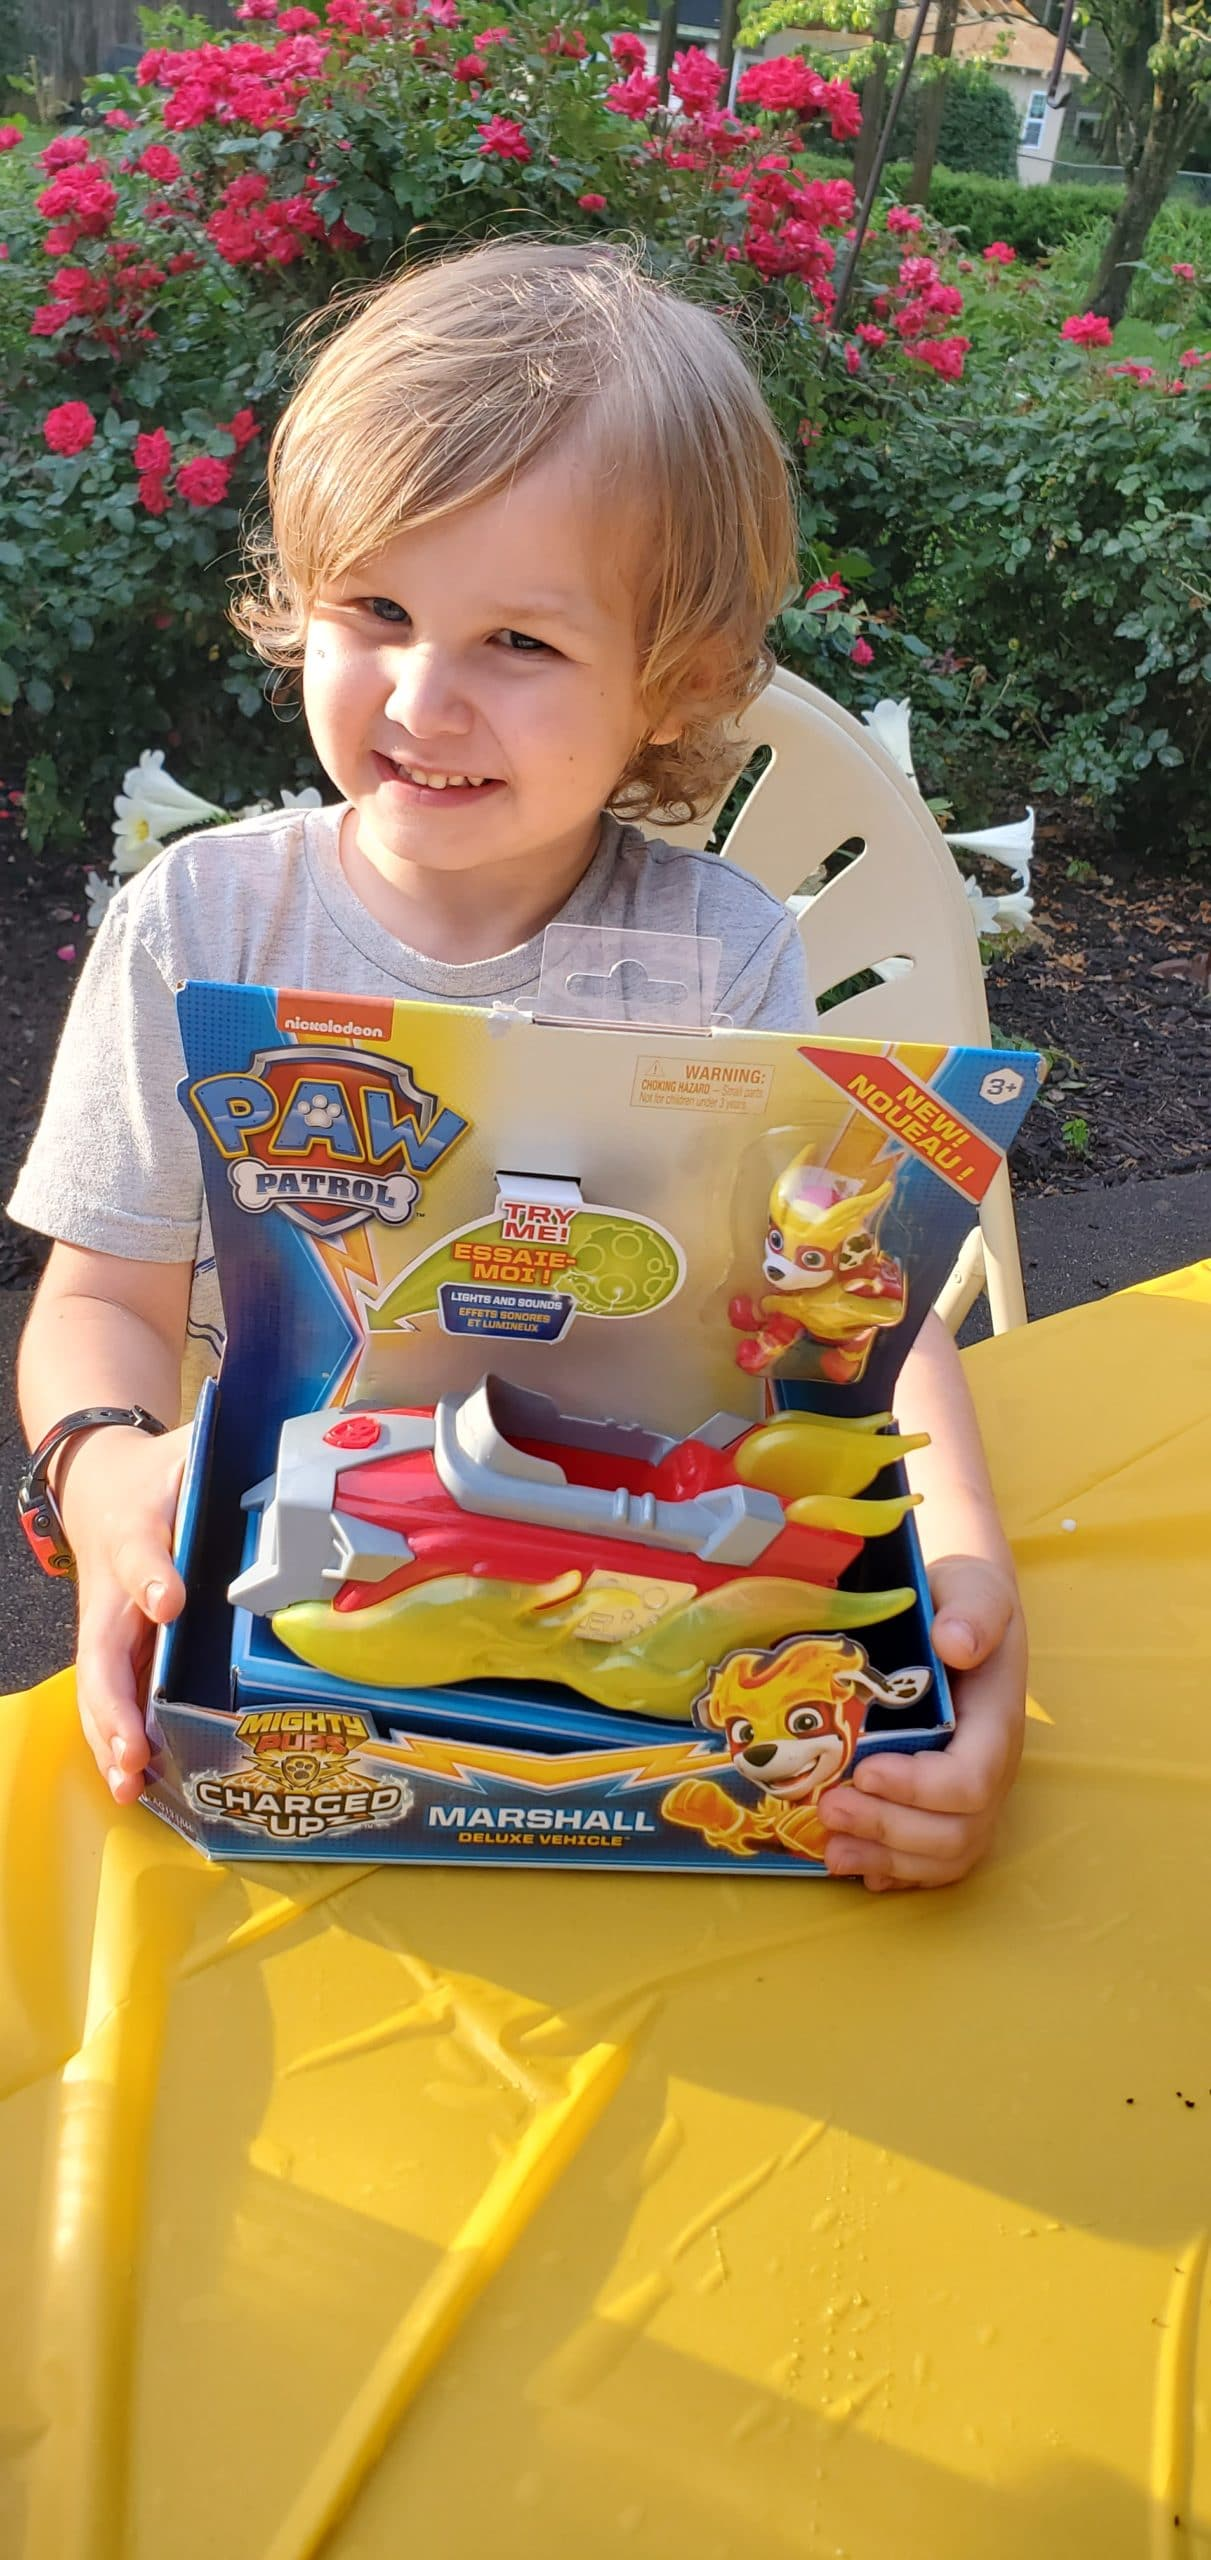 PAW Patrol: Mighty Pups Charged Up Toy. The paw-some Mighty Pups are back for next level action-packed adventures inPAW Patrol: Mighty Pups Charged Up. Checkout all of the fun toys and actvities we recieved in our Puptastic box today!